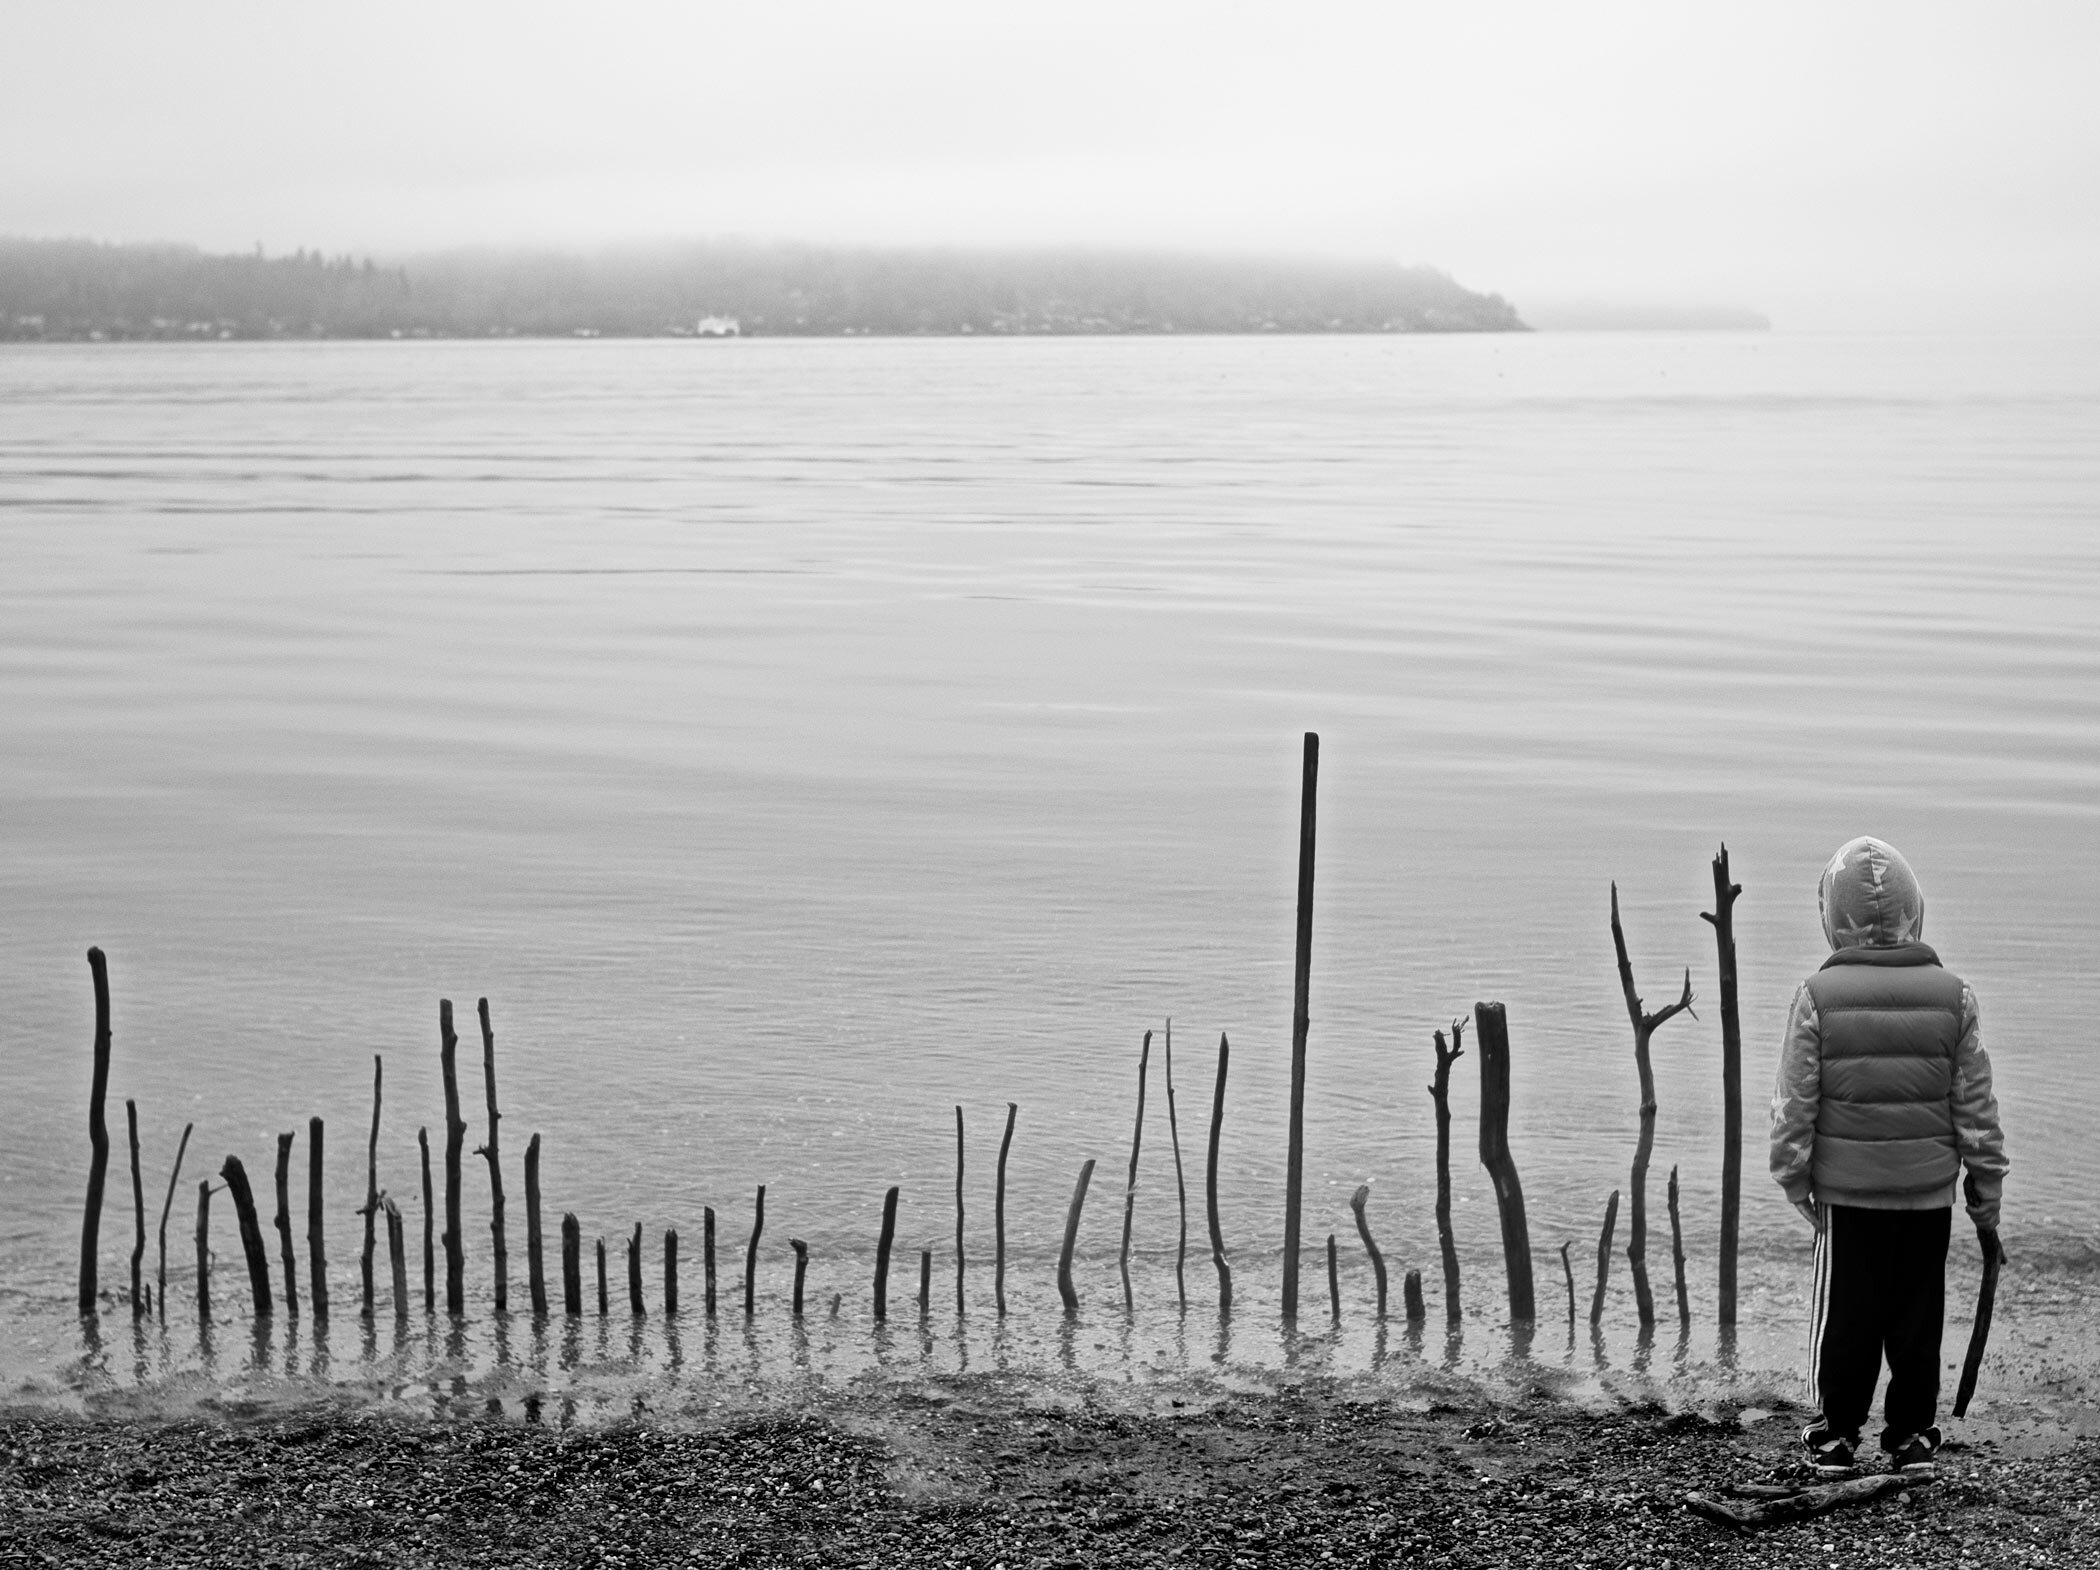 A Little Boy's Driftwood Fence On Owen Beach, New Years 2014, Tacoma , Today's Coolphoto 09/24/2019 Archival Pigment:: Edition 15 :: Size 11x9 :: Signed :: $250. ©2019 Christopher Petrich